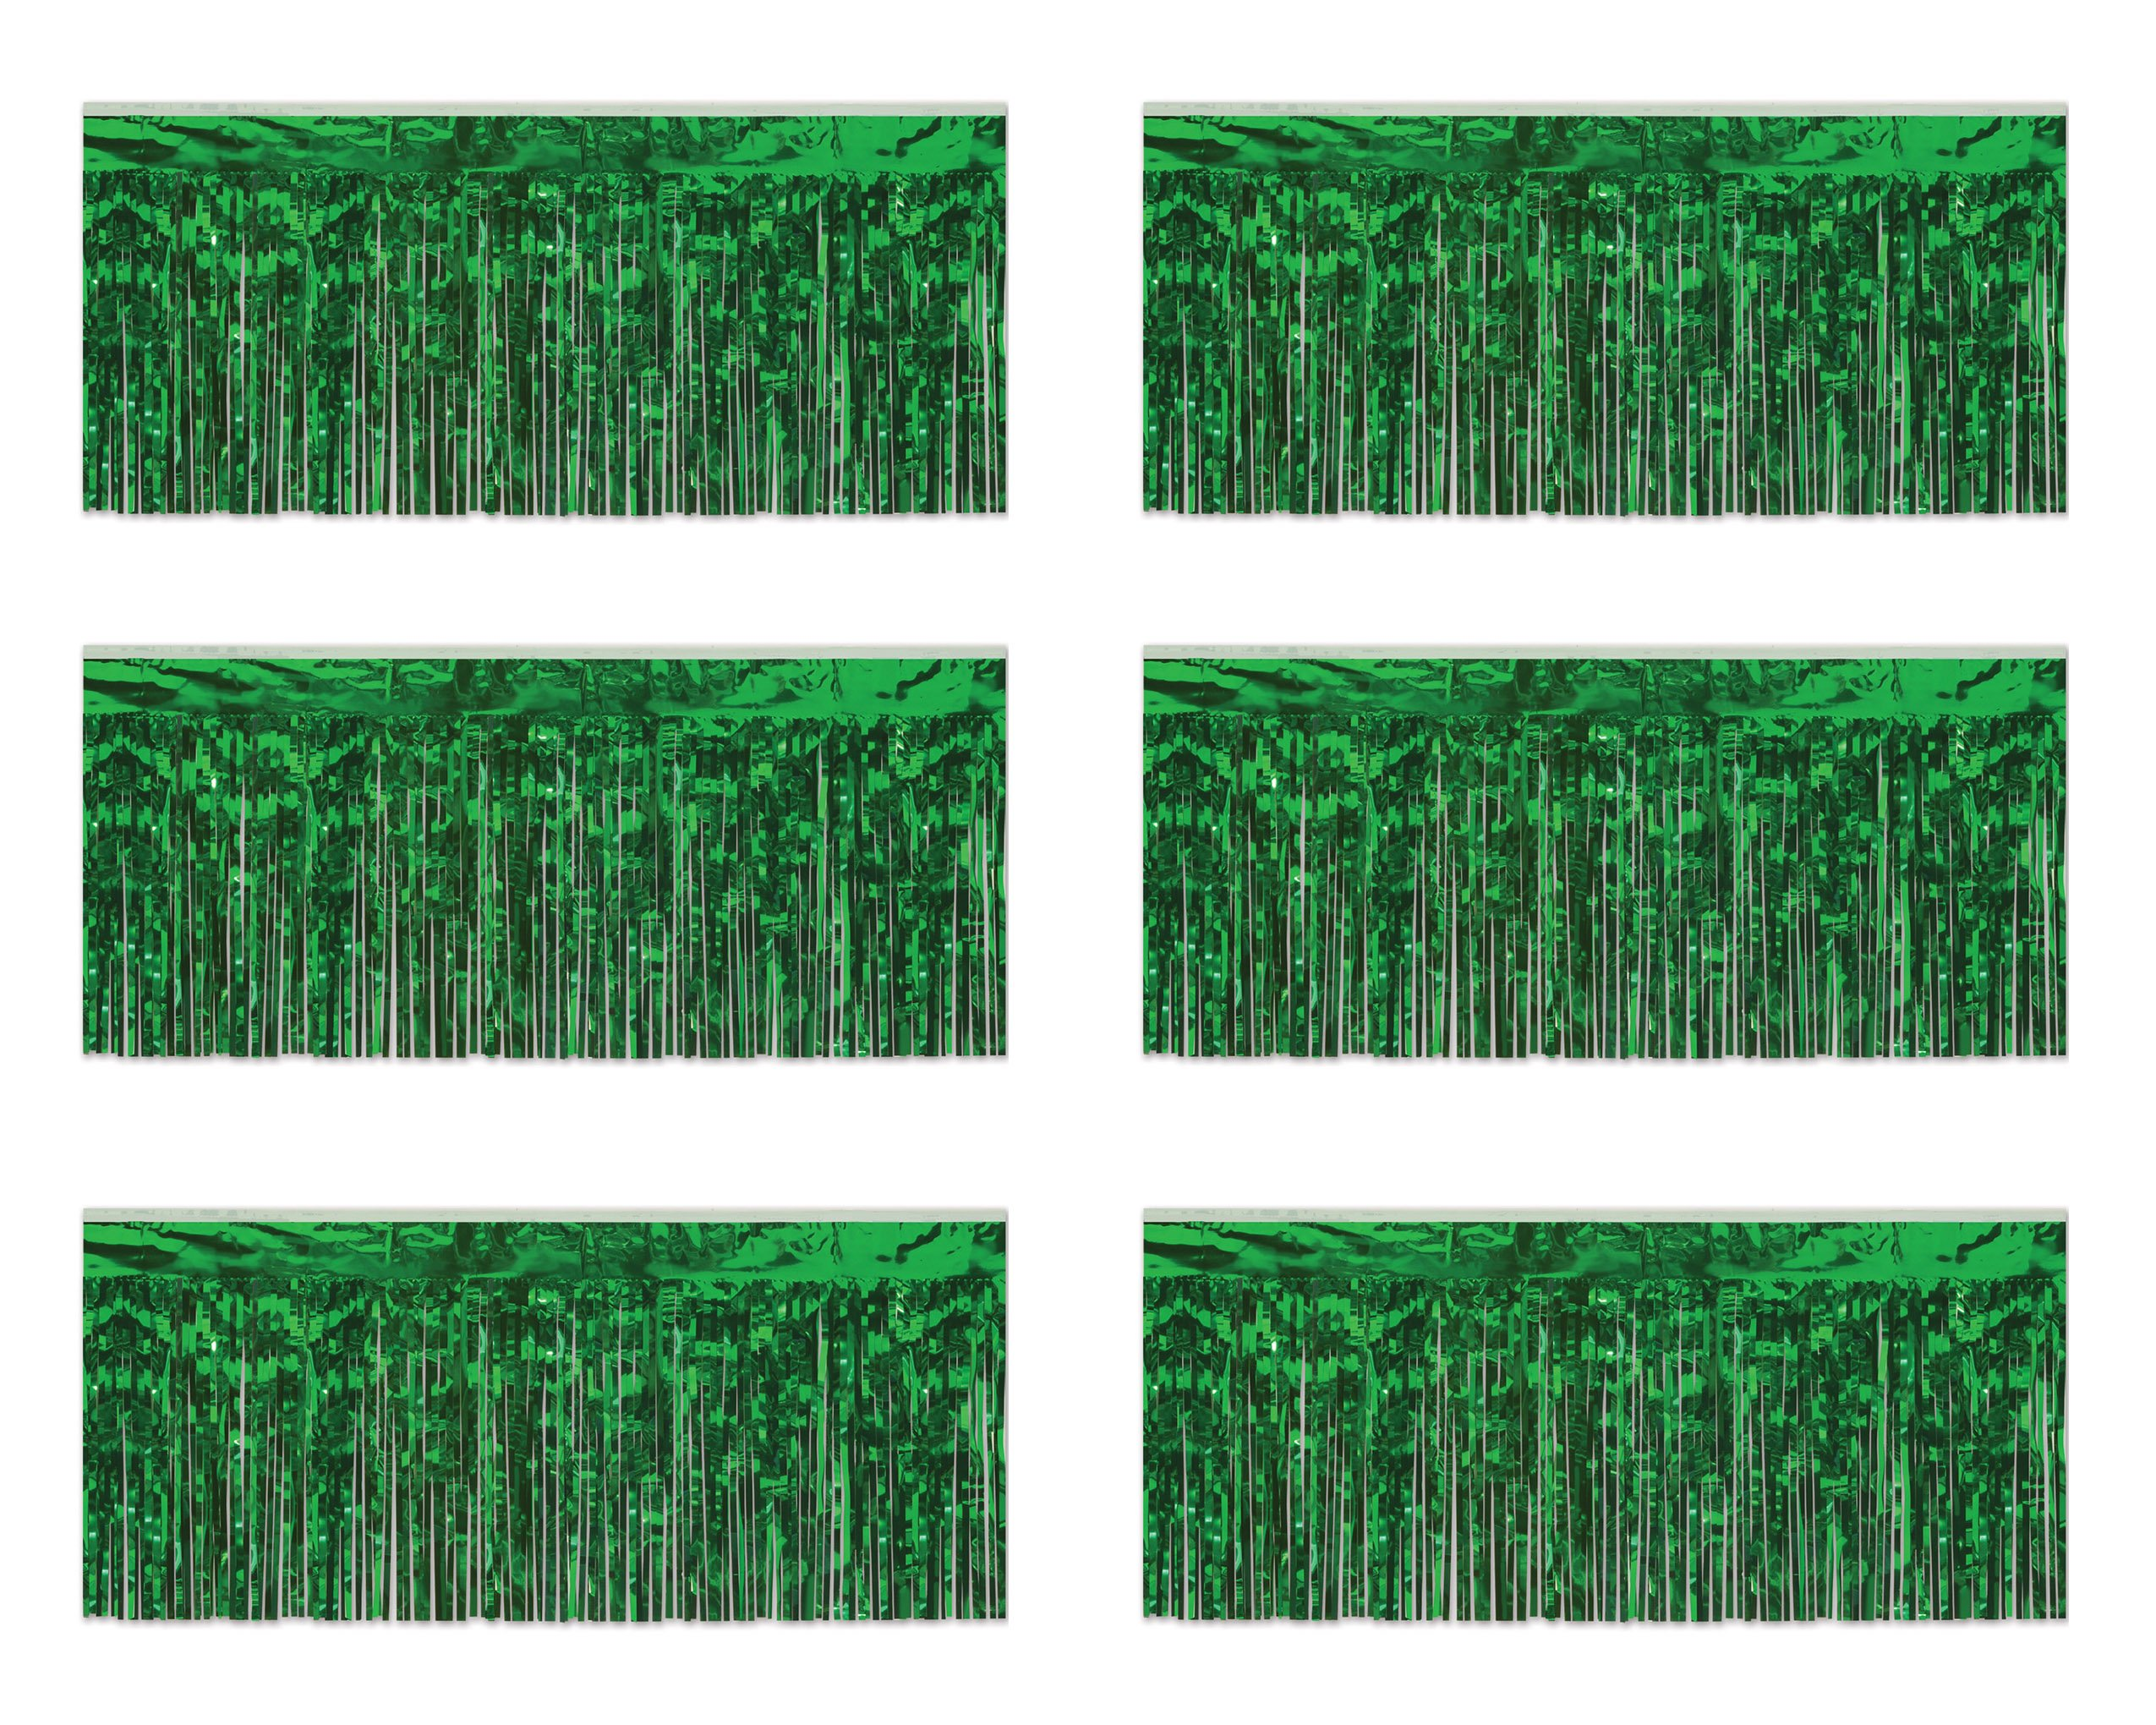 Beistle 55038-G 1-Ply Green Metallic Fringe Drapes, 15 Inch by 10 Feet, 6 Piece by Beistle